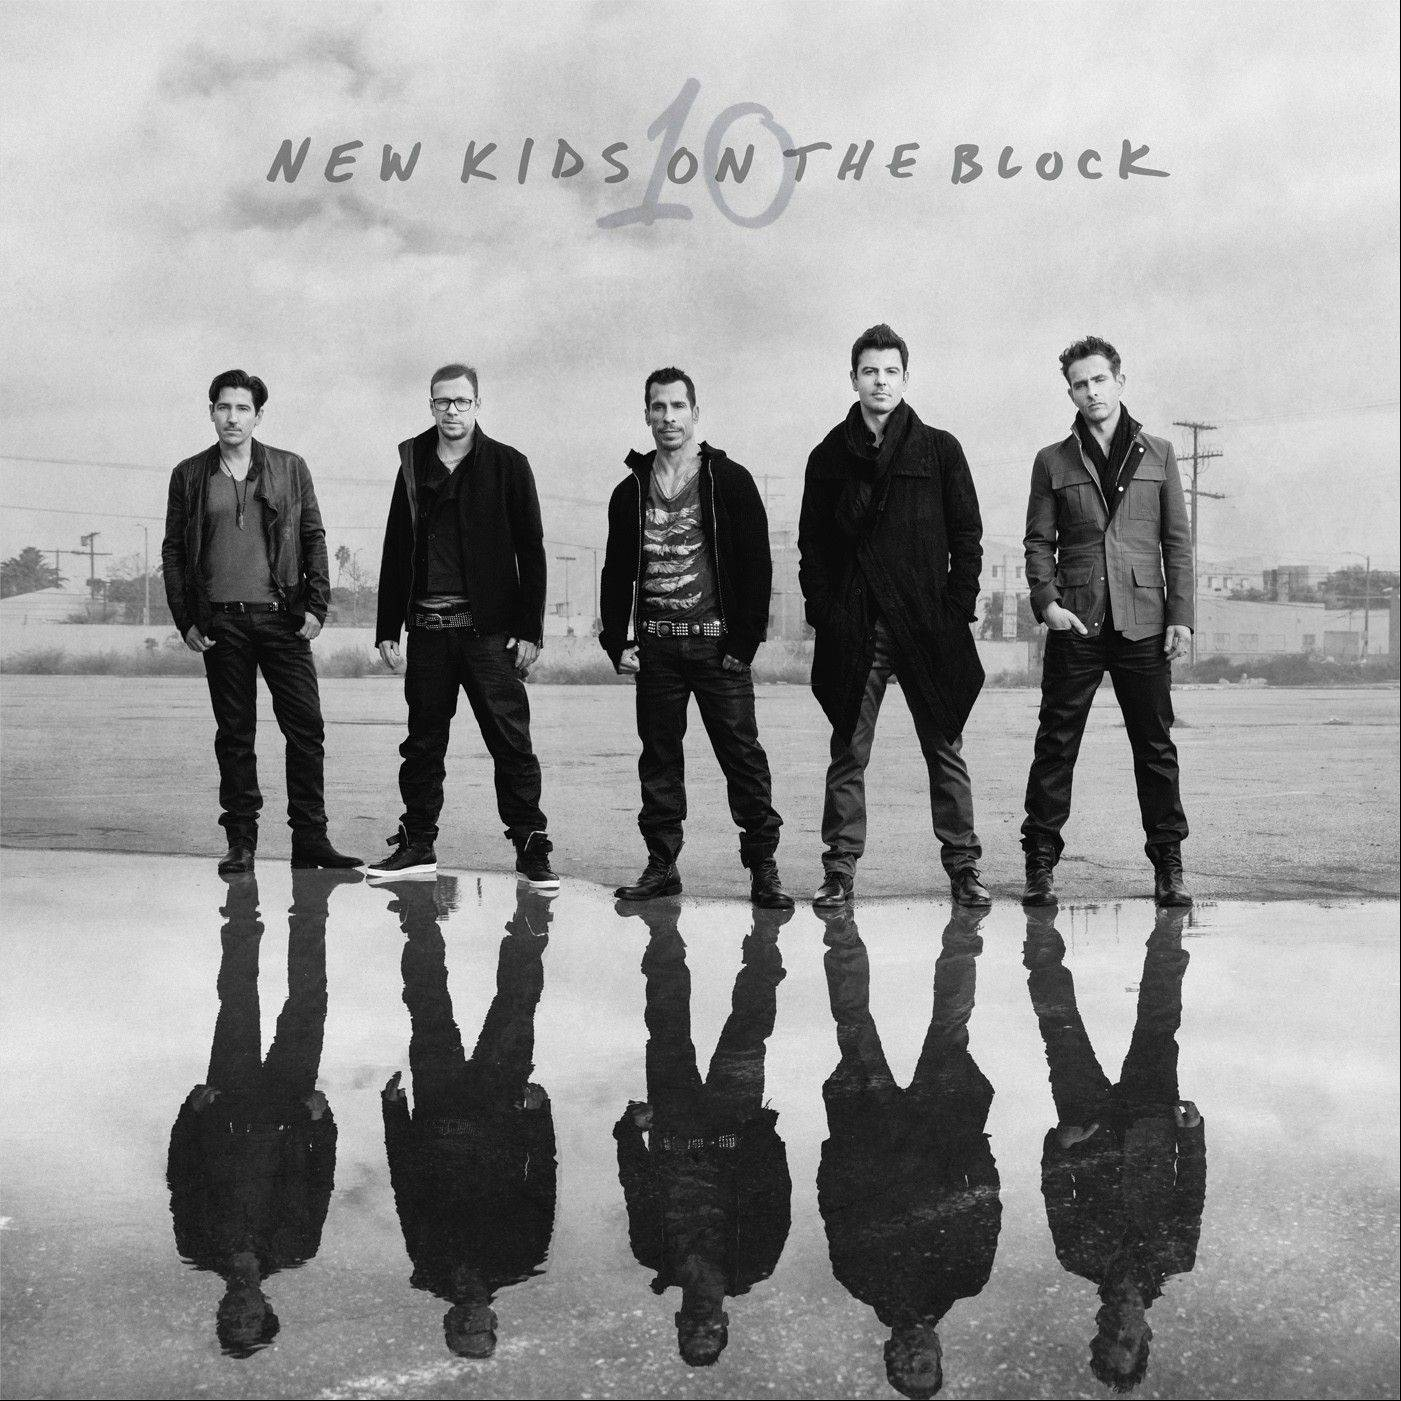 """10"" by New Kids on the Block"